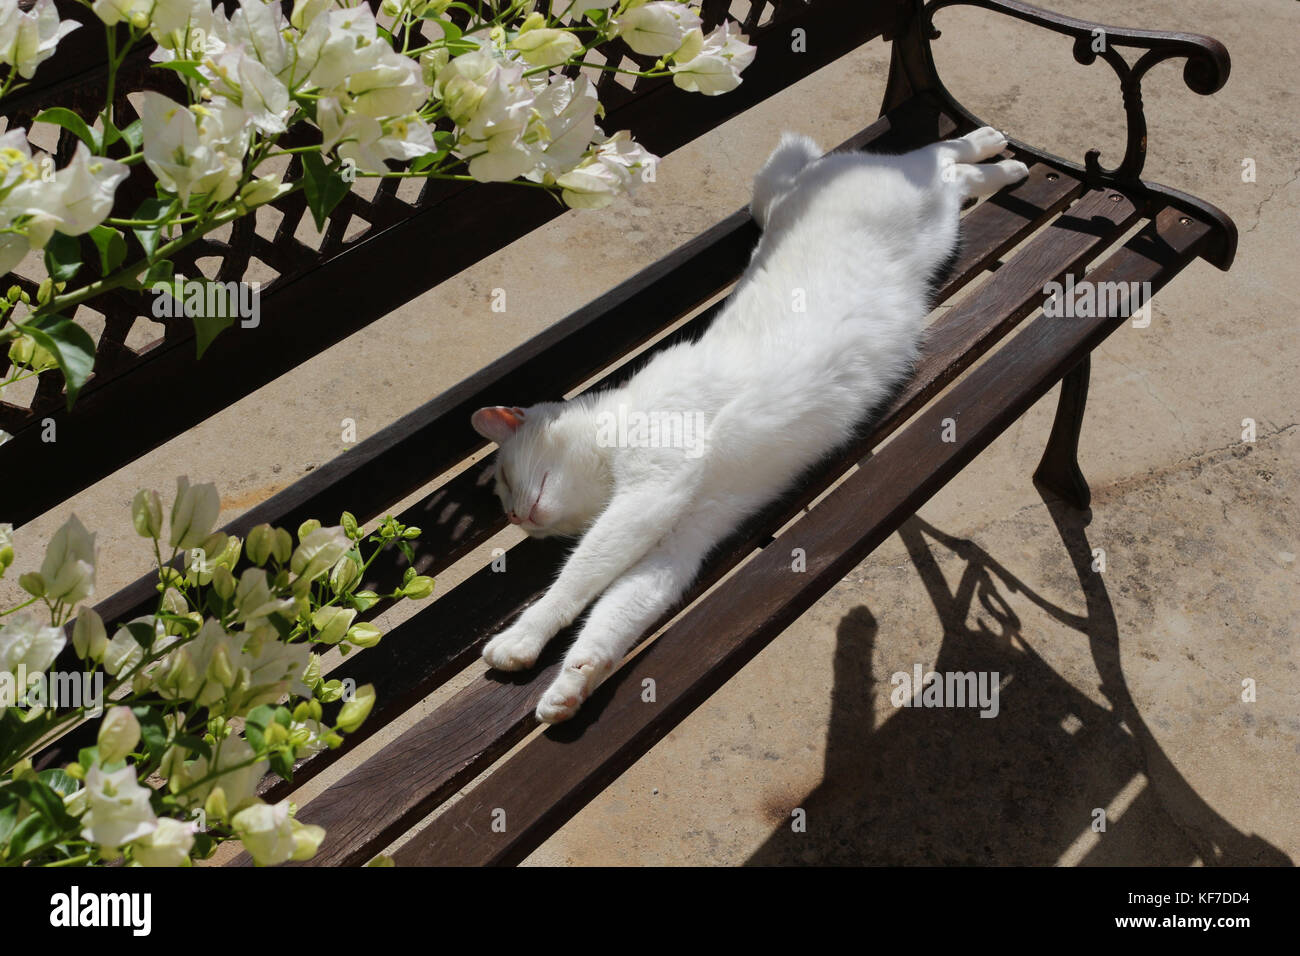 domestic cat, white, lying on a garden bench - Stock Image